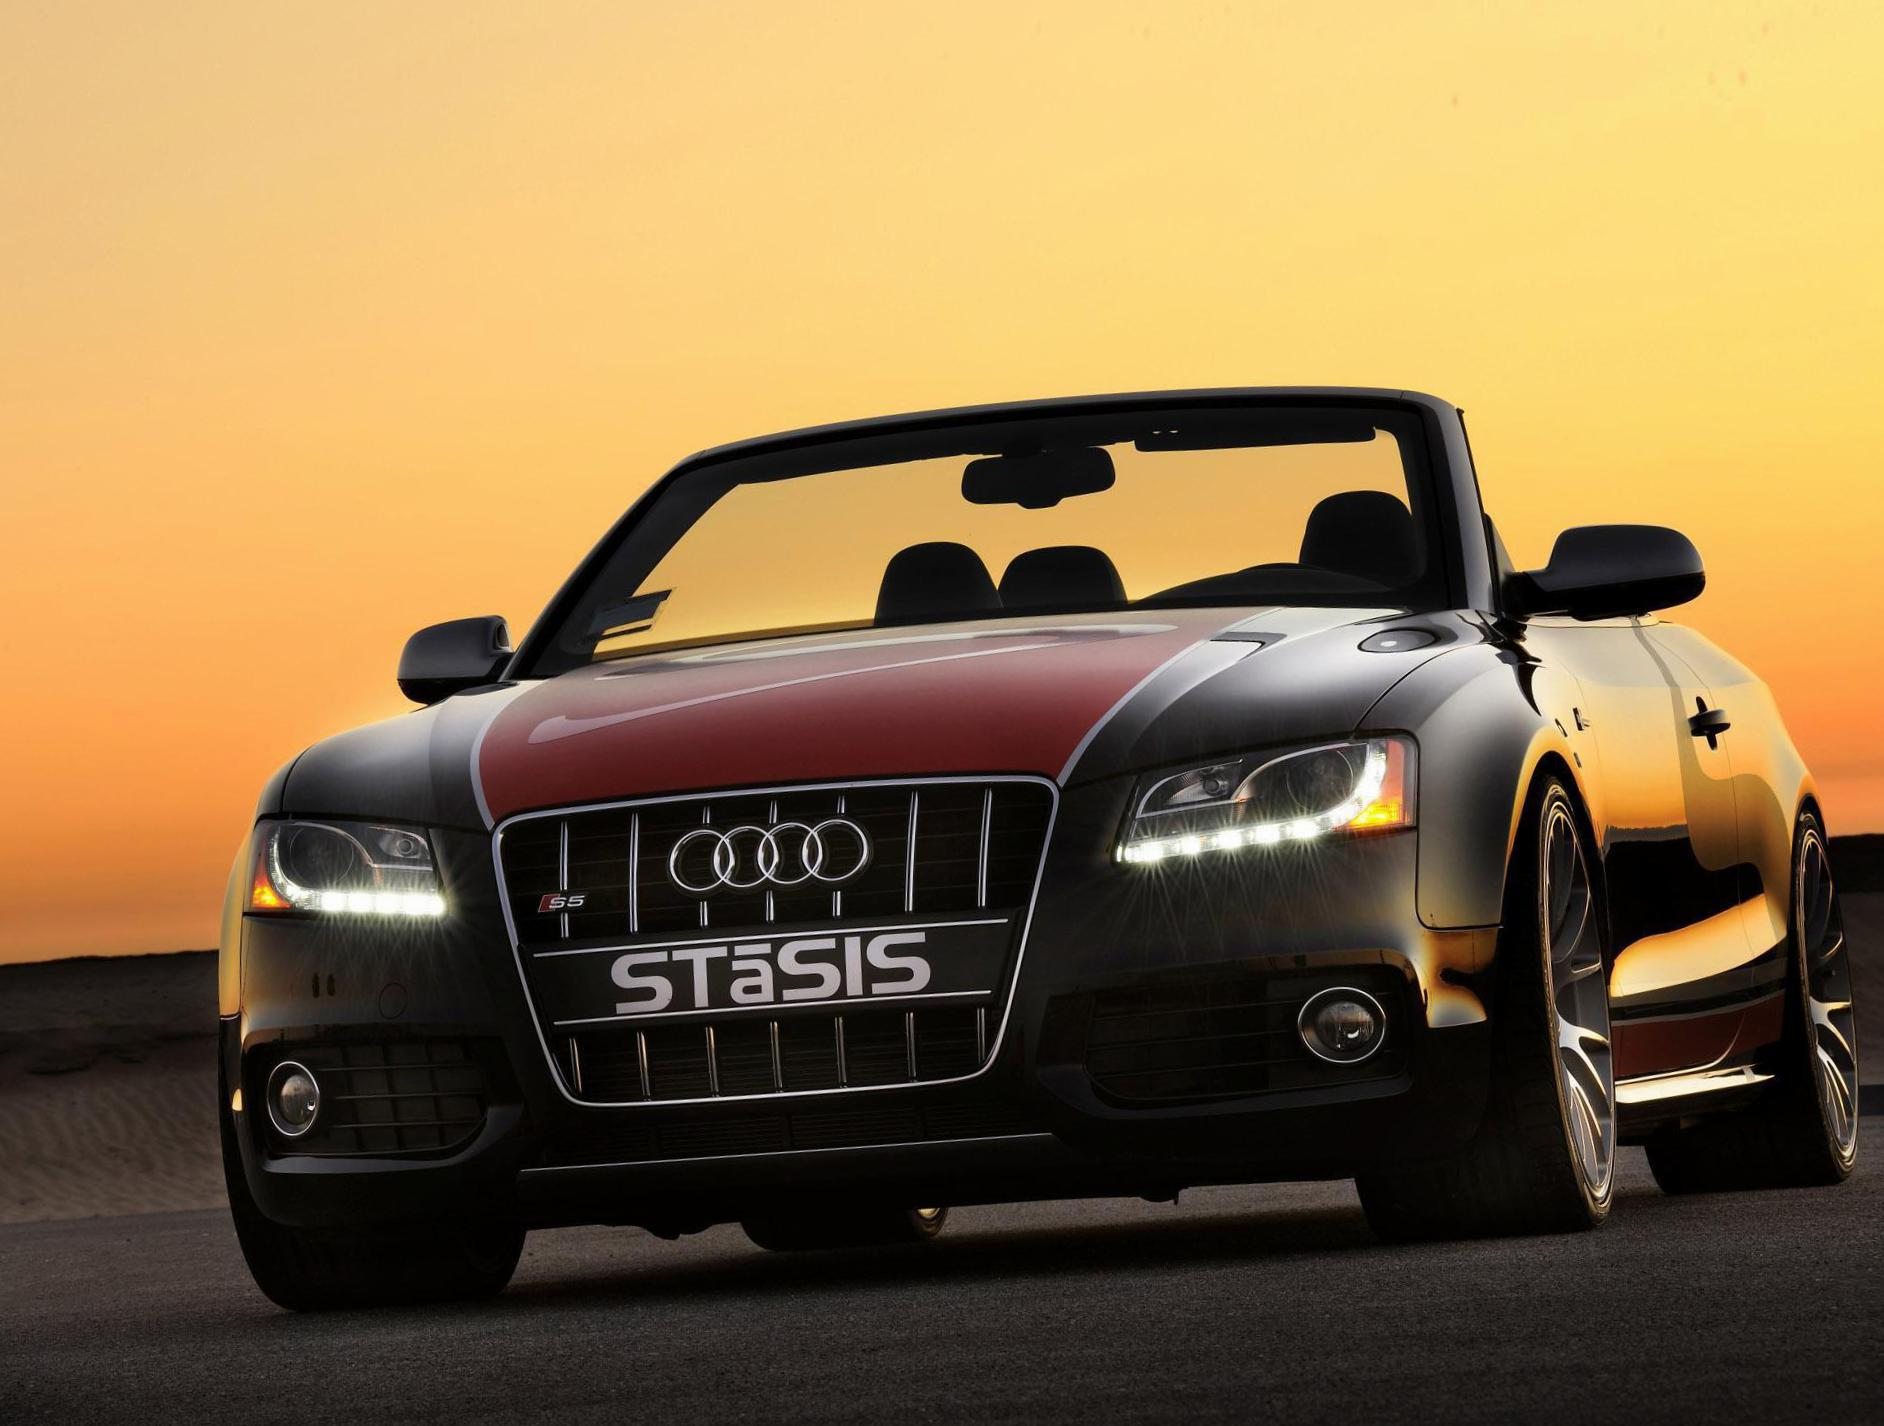 Audi S5 Cabriolet Photos And Specs Photo Audi S5 Cabriolet How Mach And 22 Perfect Photos Of Audi S5 Cabriolet